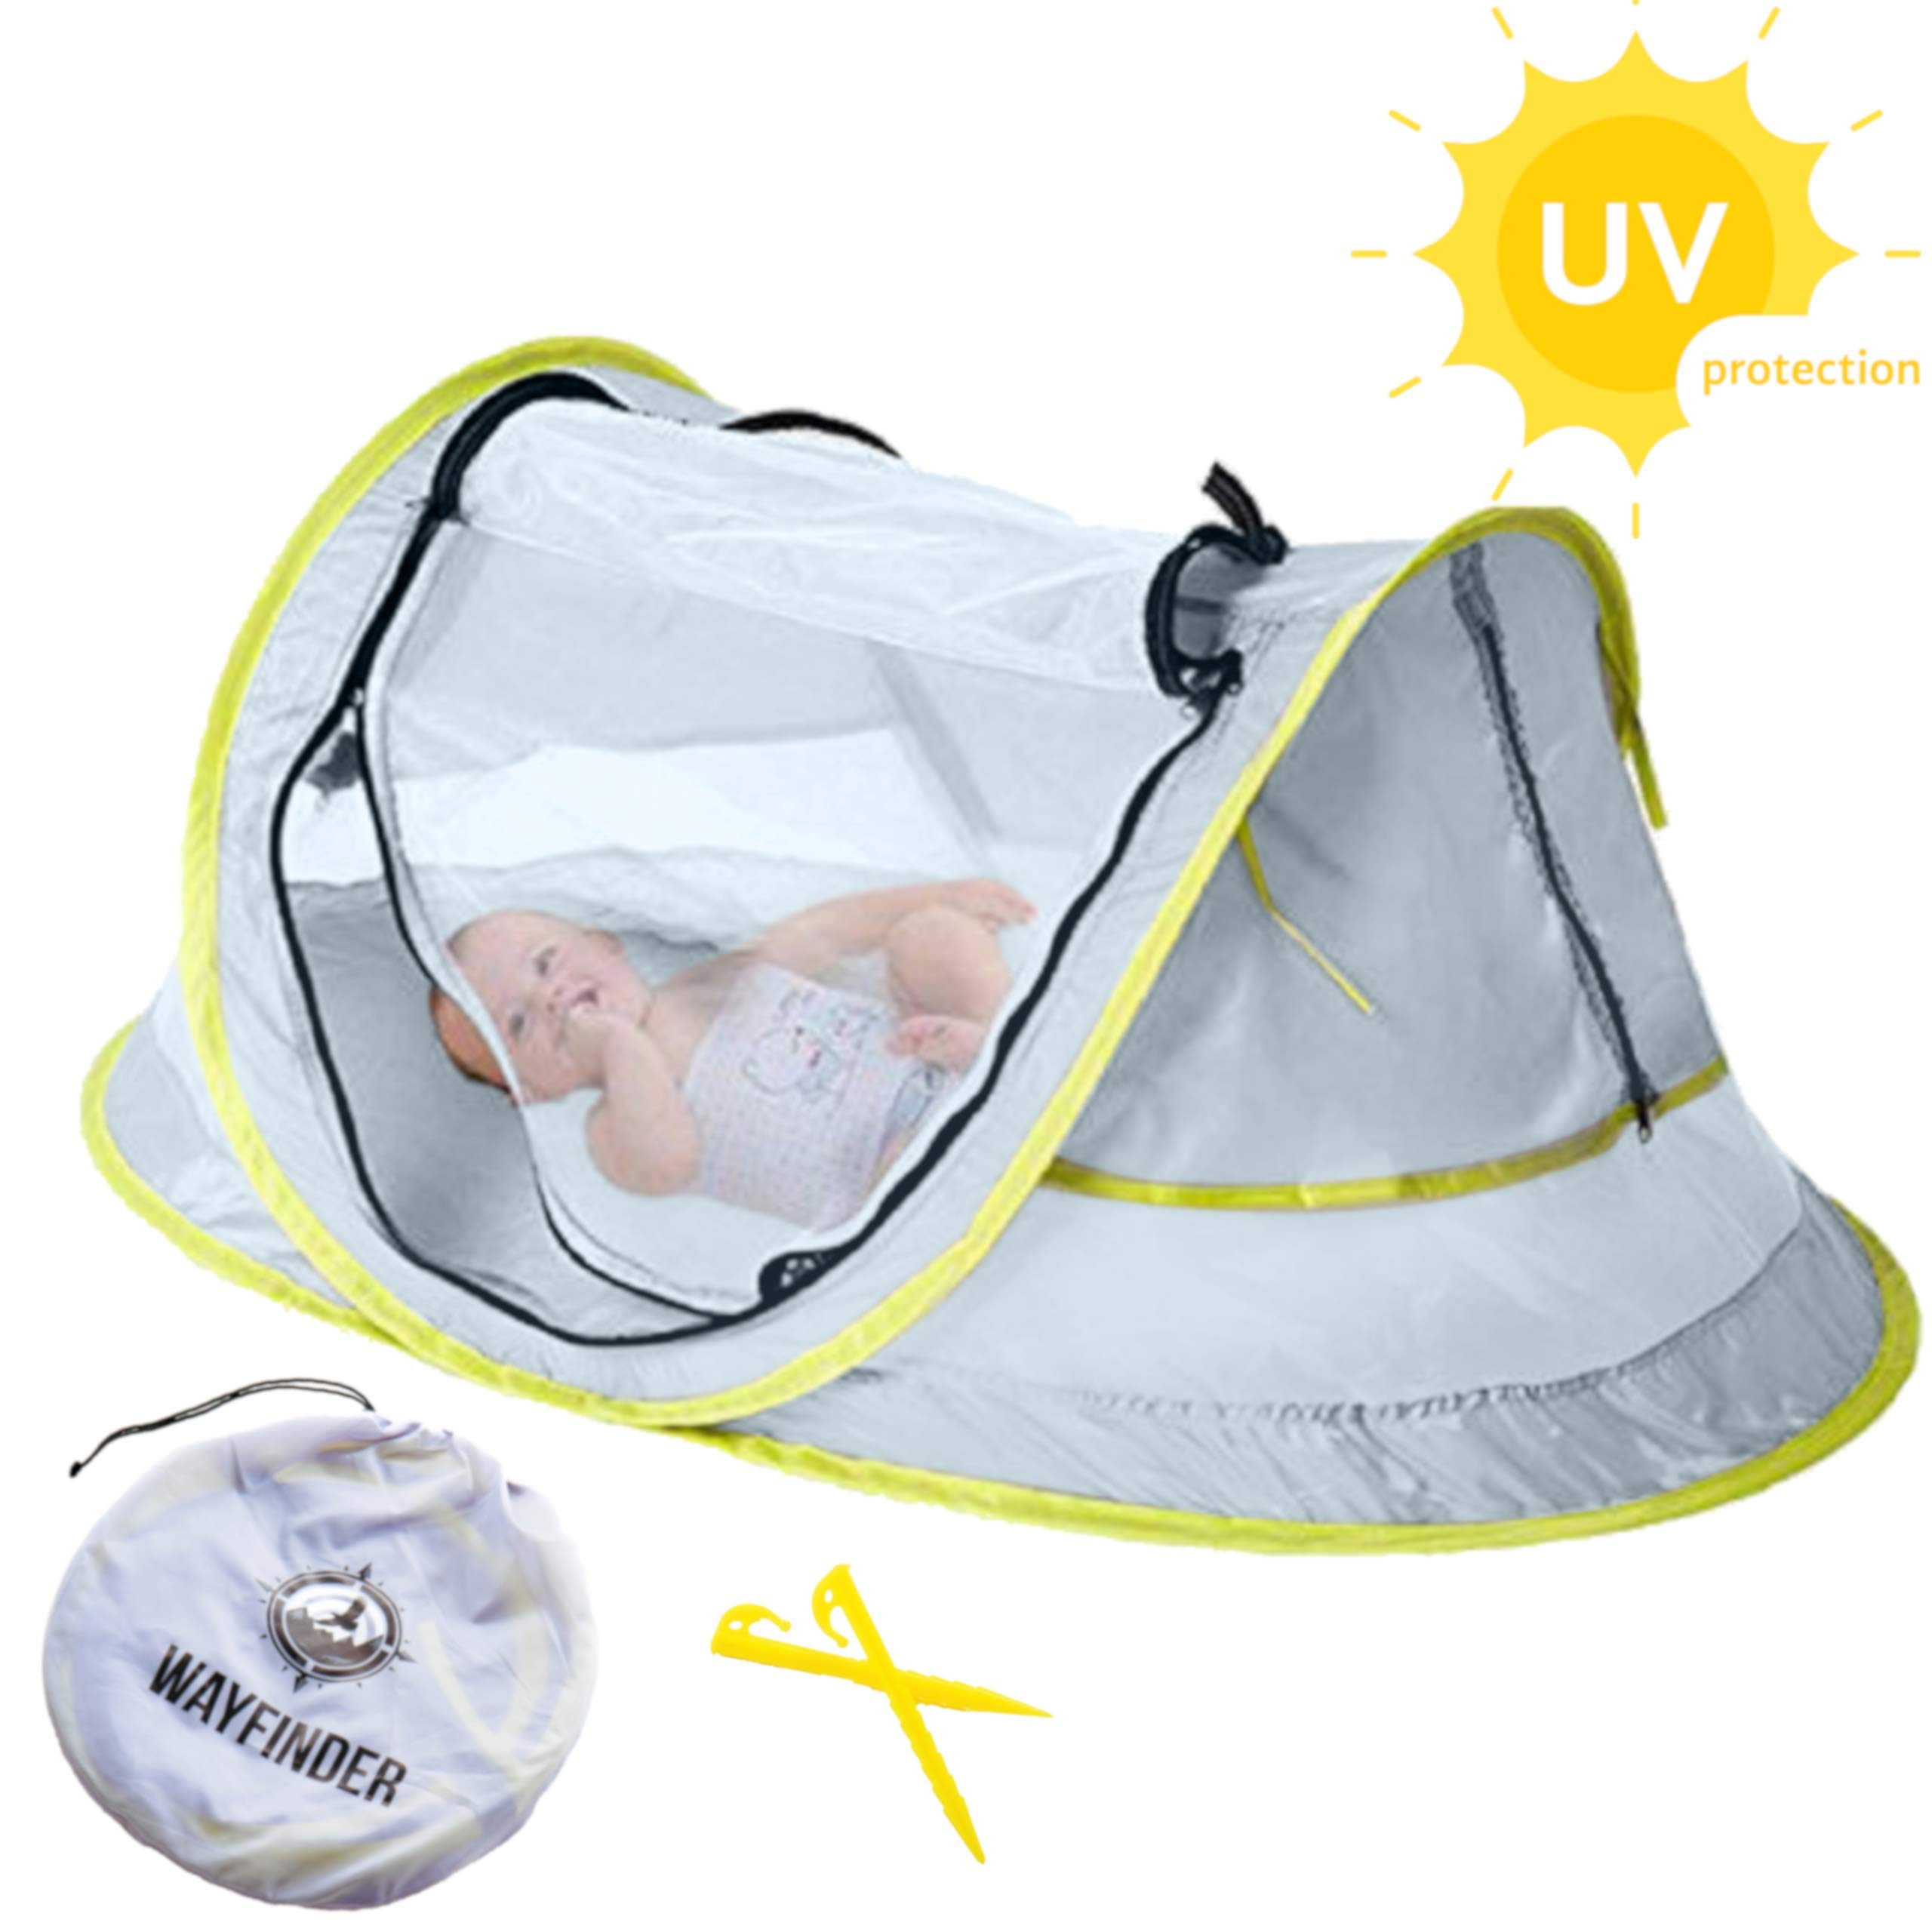 Wayfinder TravelTot, Baby Travel Tent Portable Baby Travel Bed Indoor & Outdoor Travel Crib Baby Beach Tent UPF 50+ UV Protection w/Mosquito Net and 2 Pegs by The Wayfinder Co.